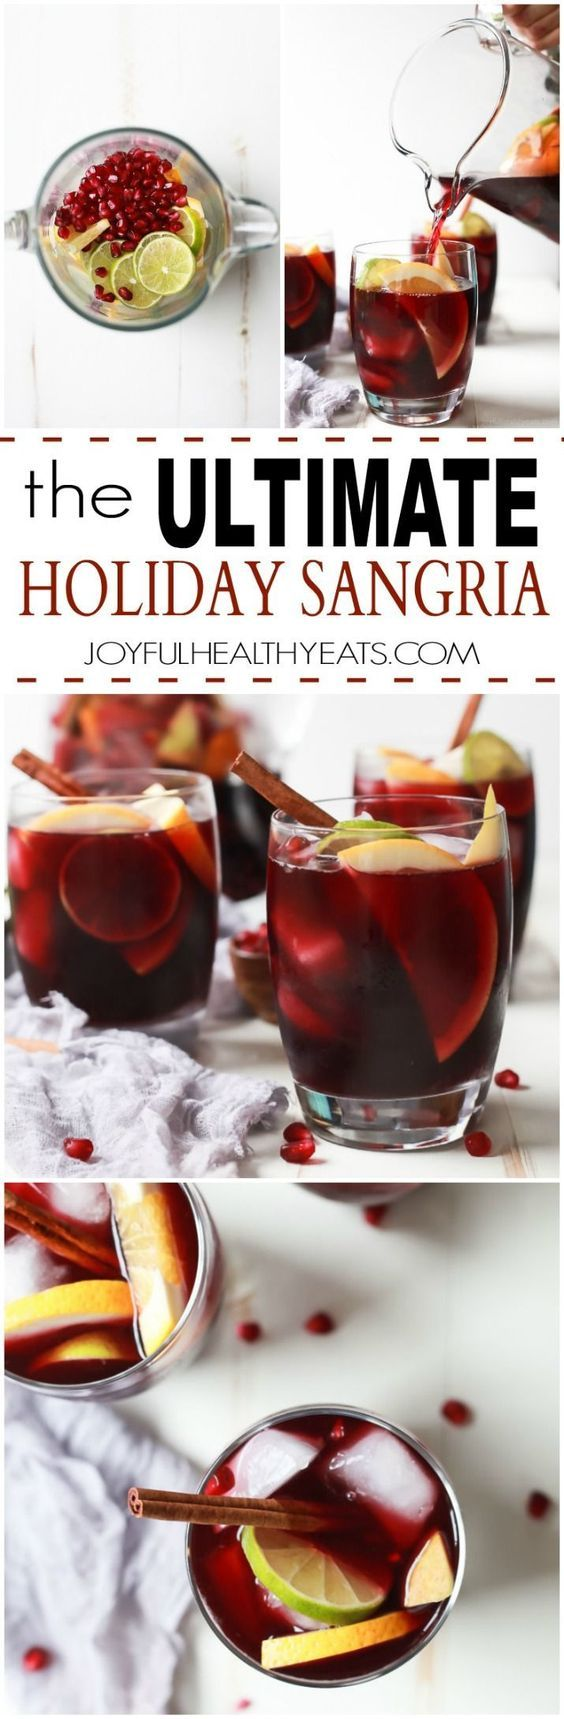 The Ultimate Holiday Sangria Recipe filled with citrus, pomegranate, crisp pear, and cinnamon for one irresistible sip! Find out my secret method to making the BEST sangria!   joyfulhealthyeats.com